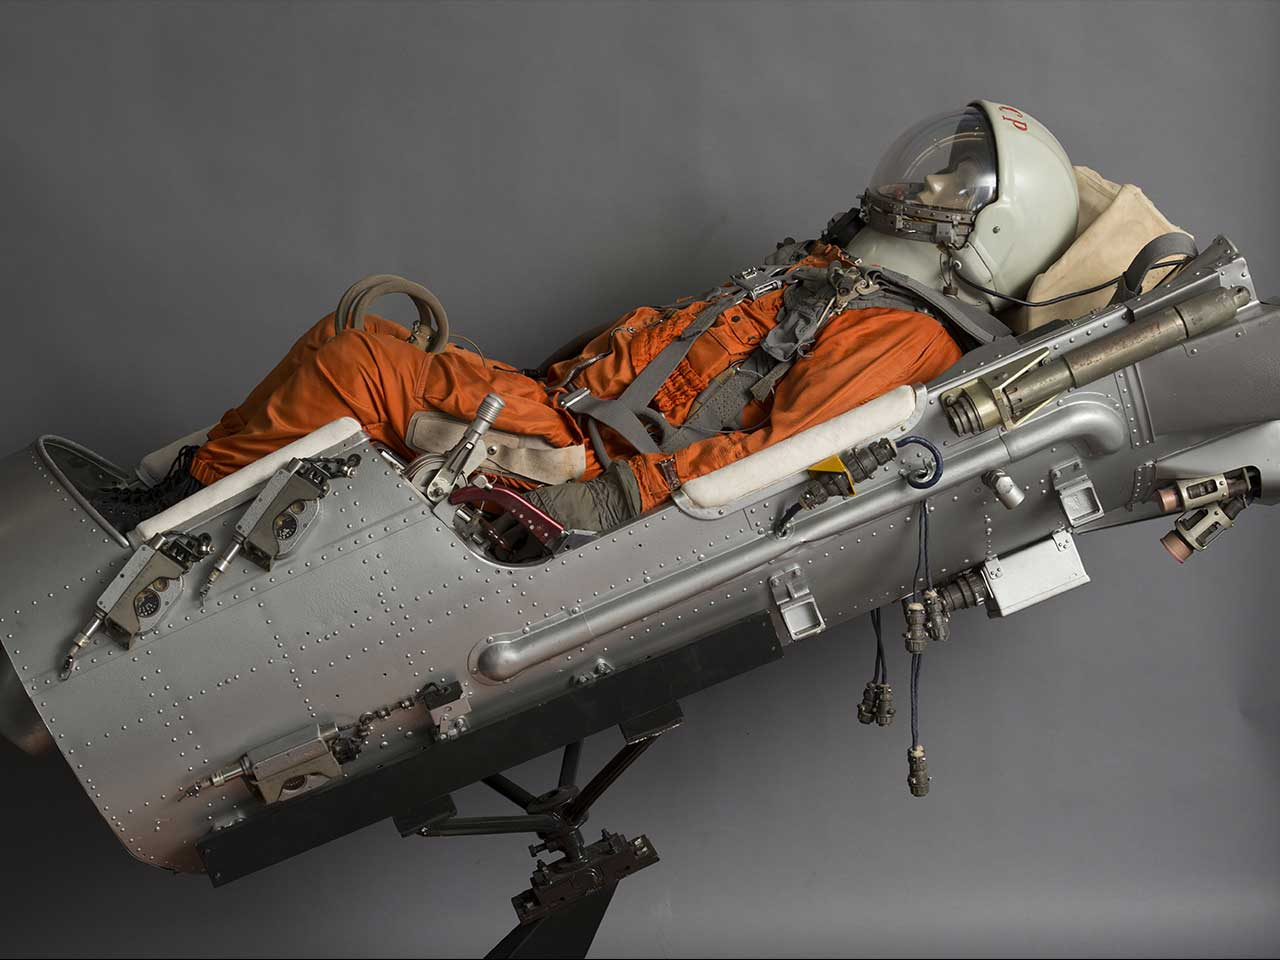 Vostok VZA ejection seat